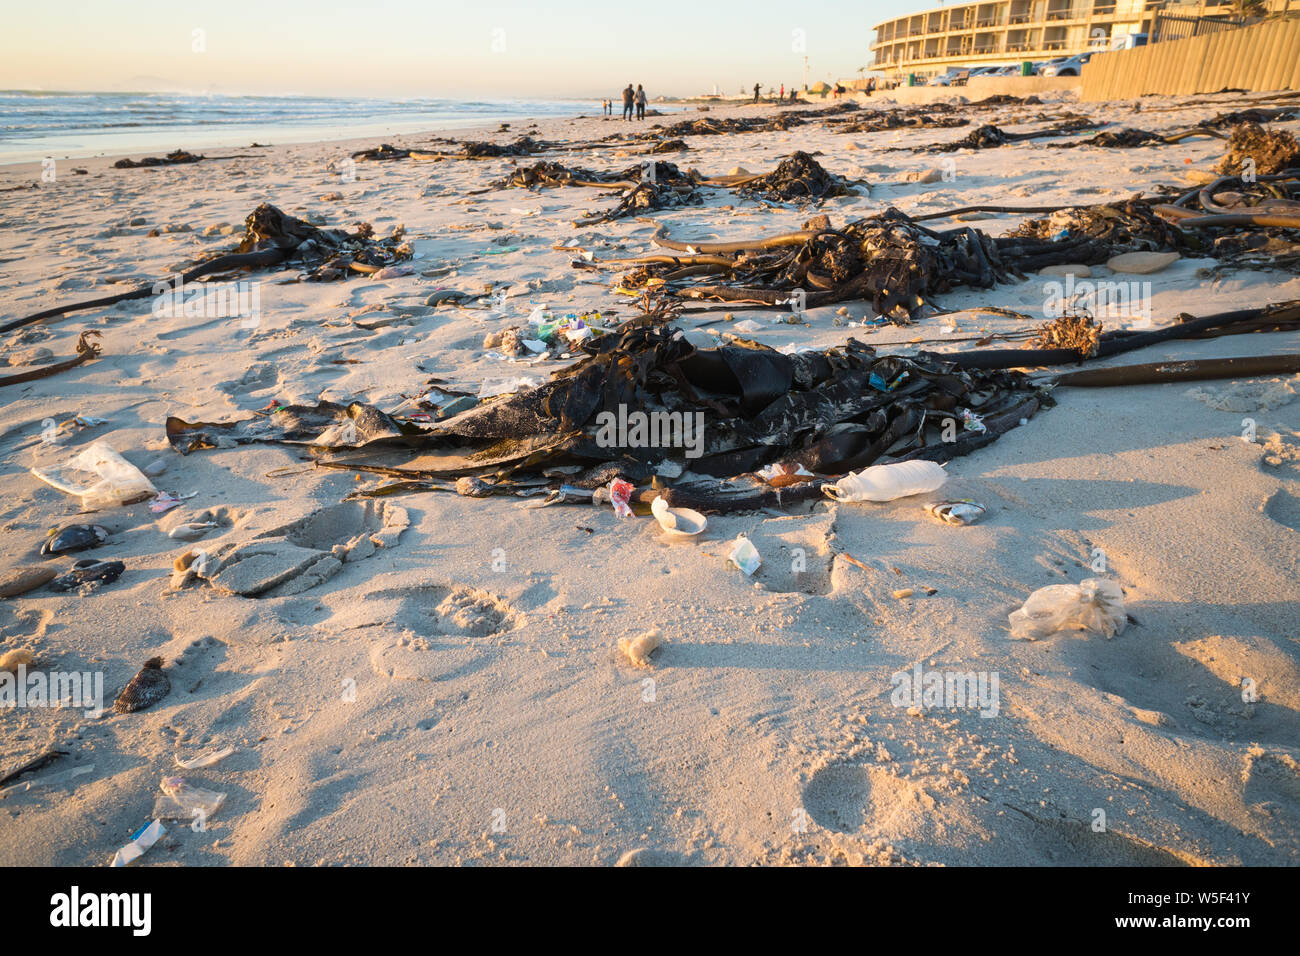 debris and plastic pollution washed up onto the white beach sand entangled in seaweed or kelp concept environmental coastal destruction in Africa Stock Photo